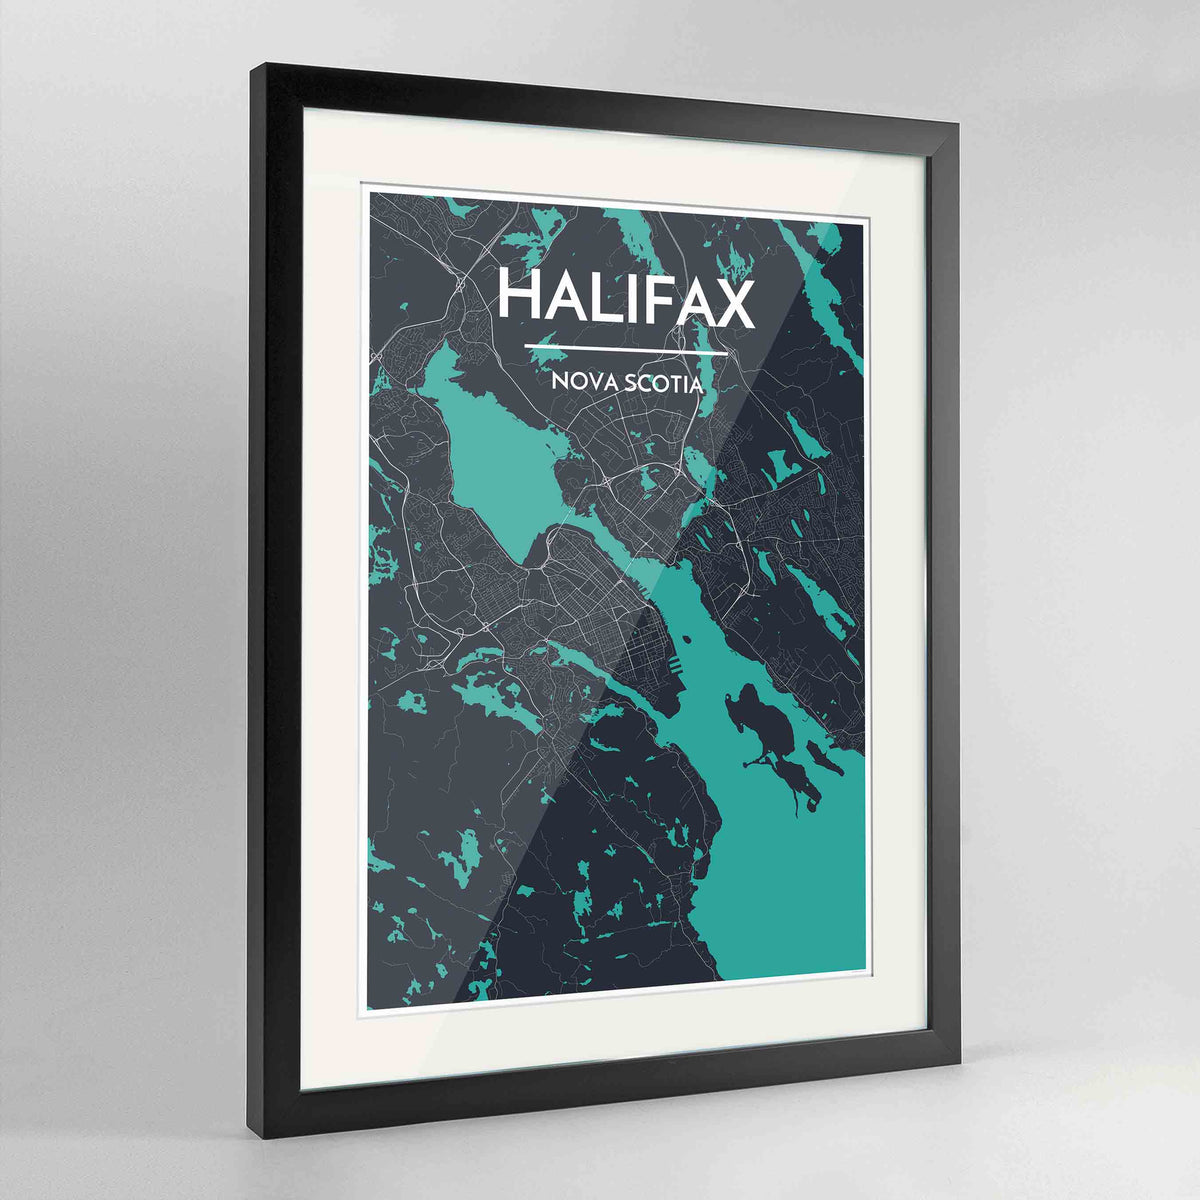 "Framed Halifax City Map 24x36"" Contemporary Black frame Point Two Design Group"